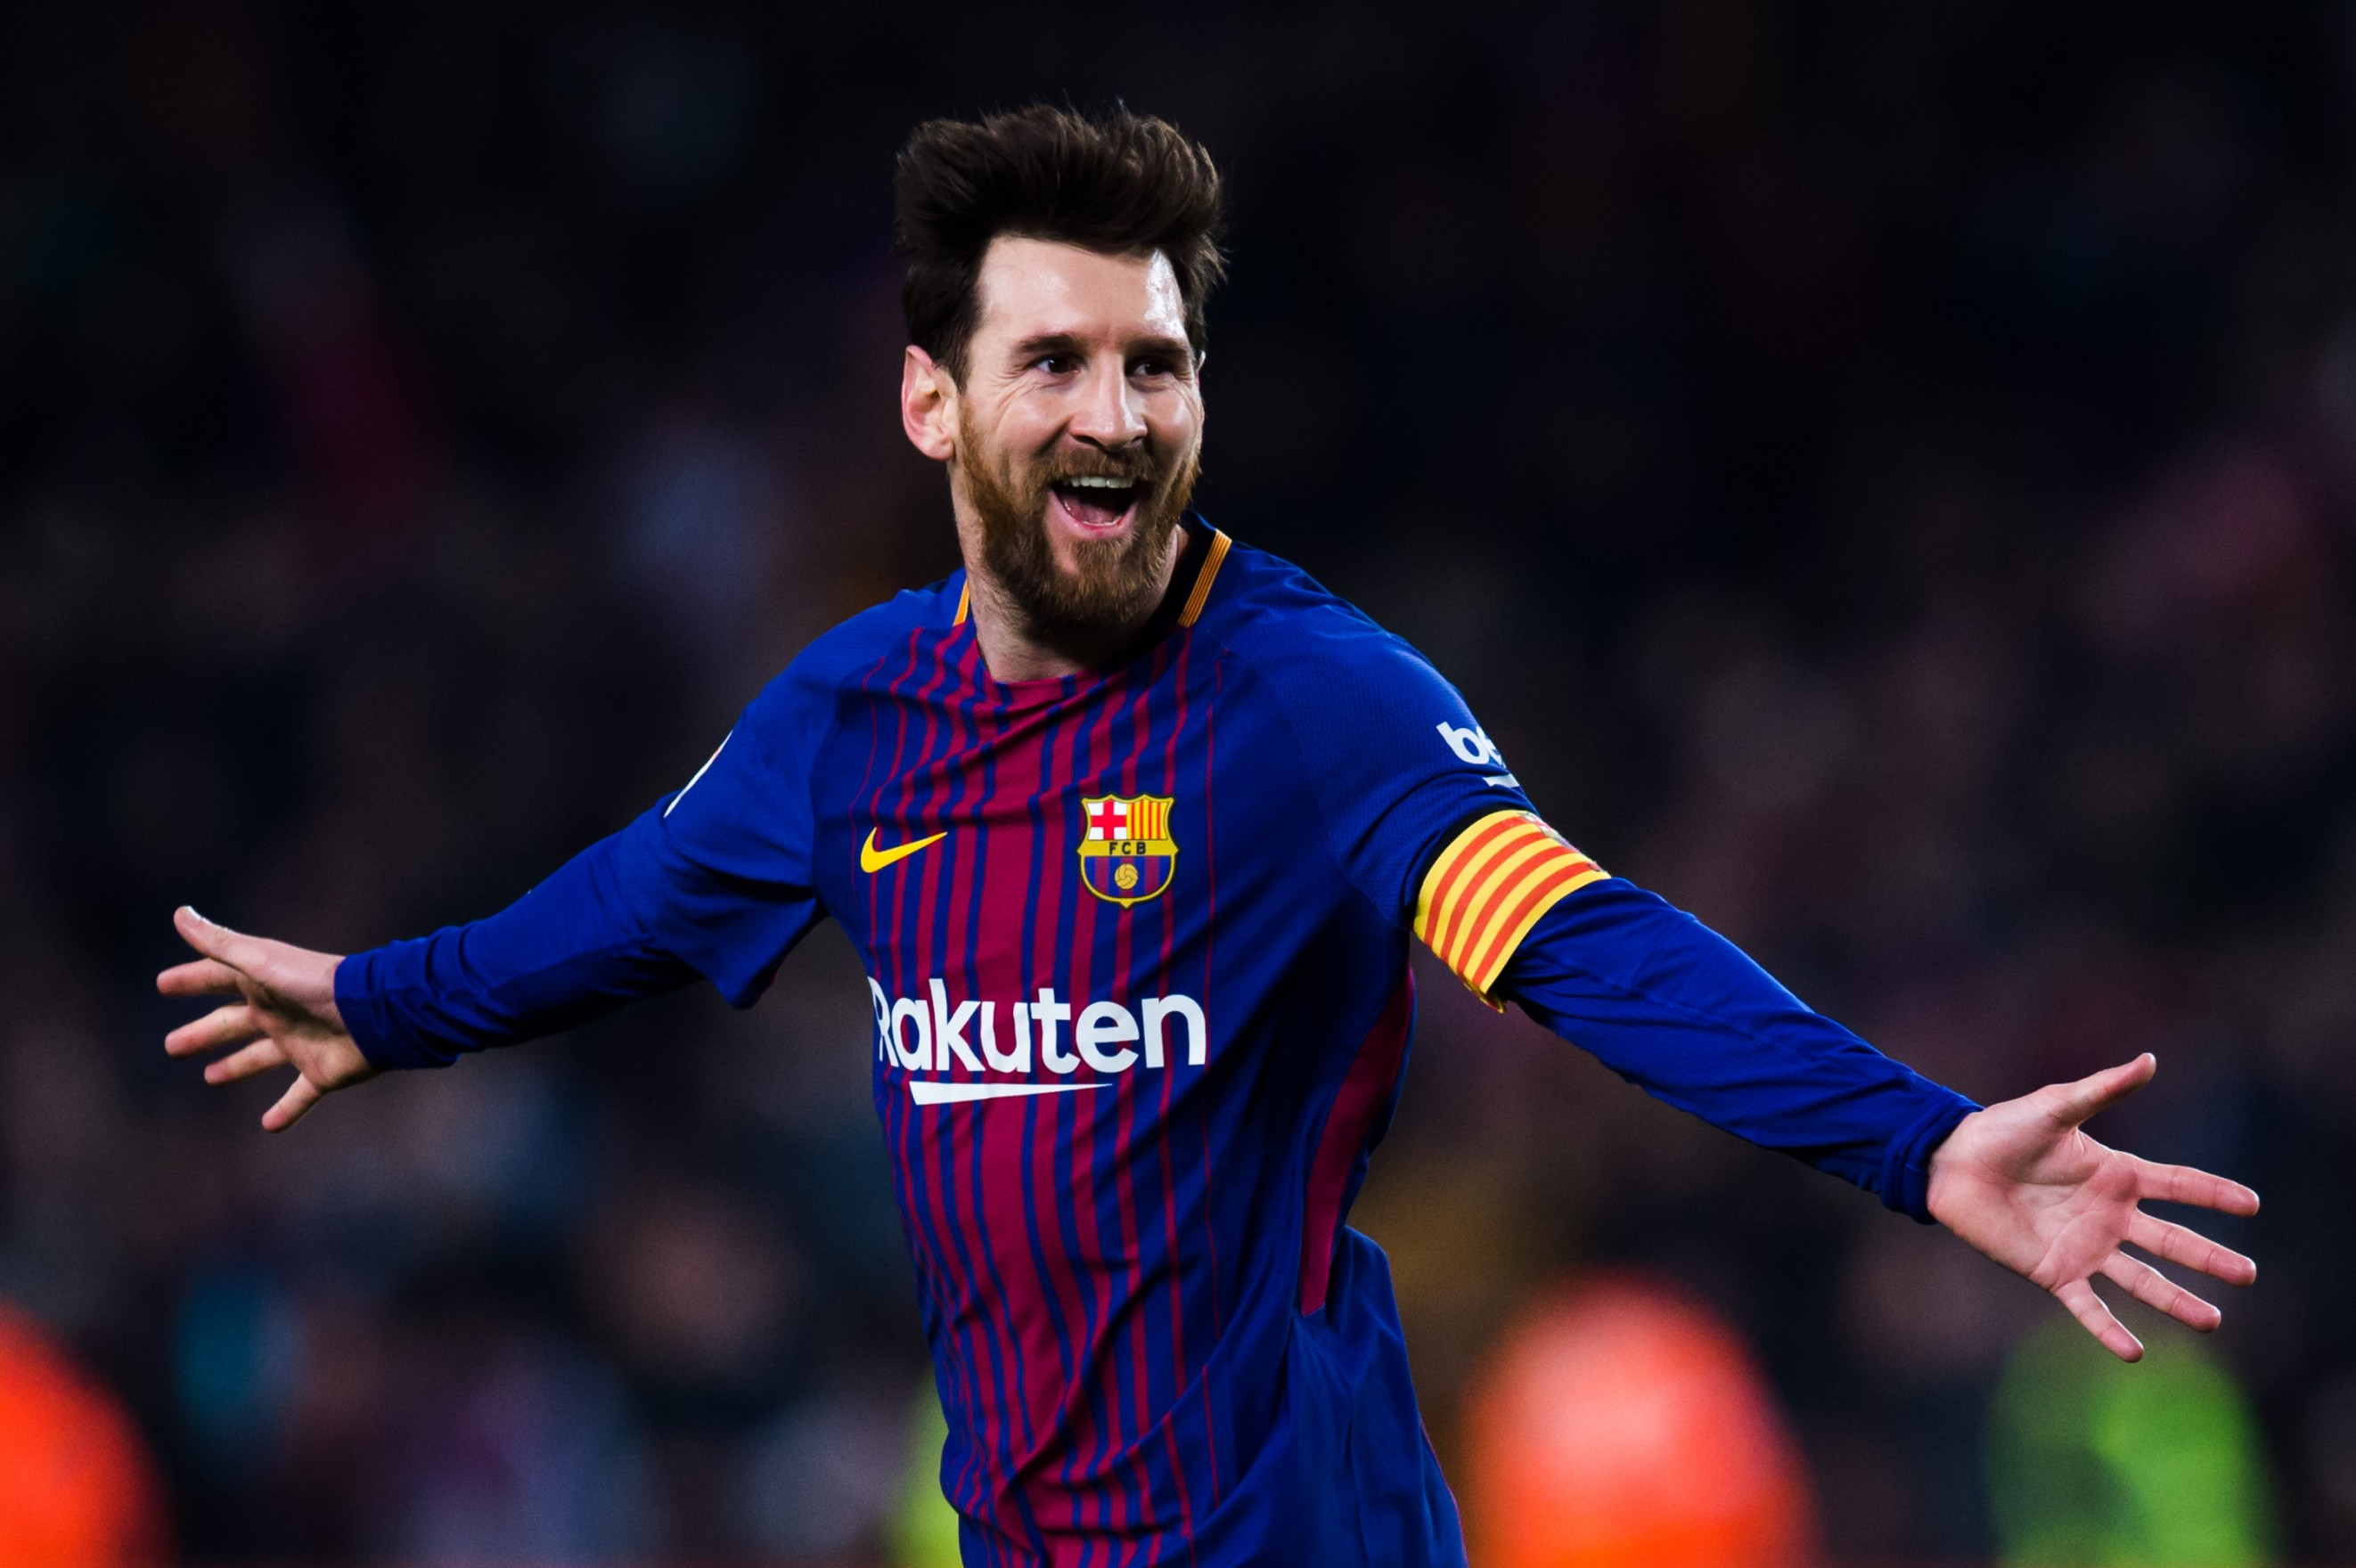 🔥 Lionel Messi Wallpapers K Full HD 😍 for Android APK